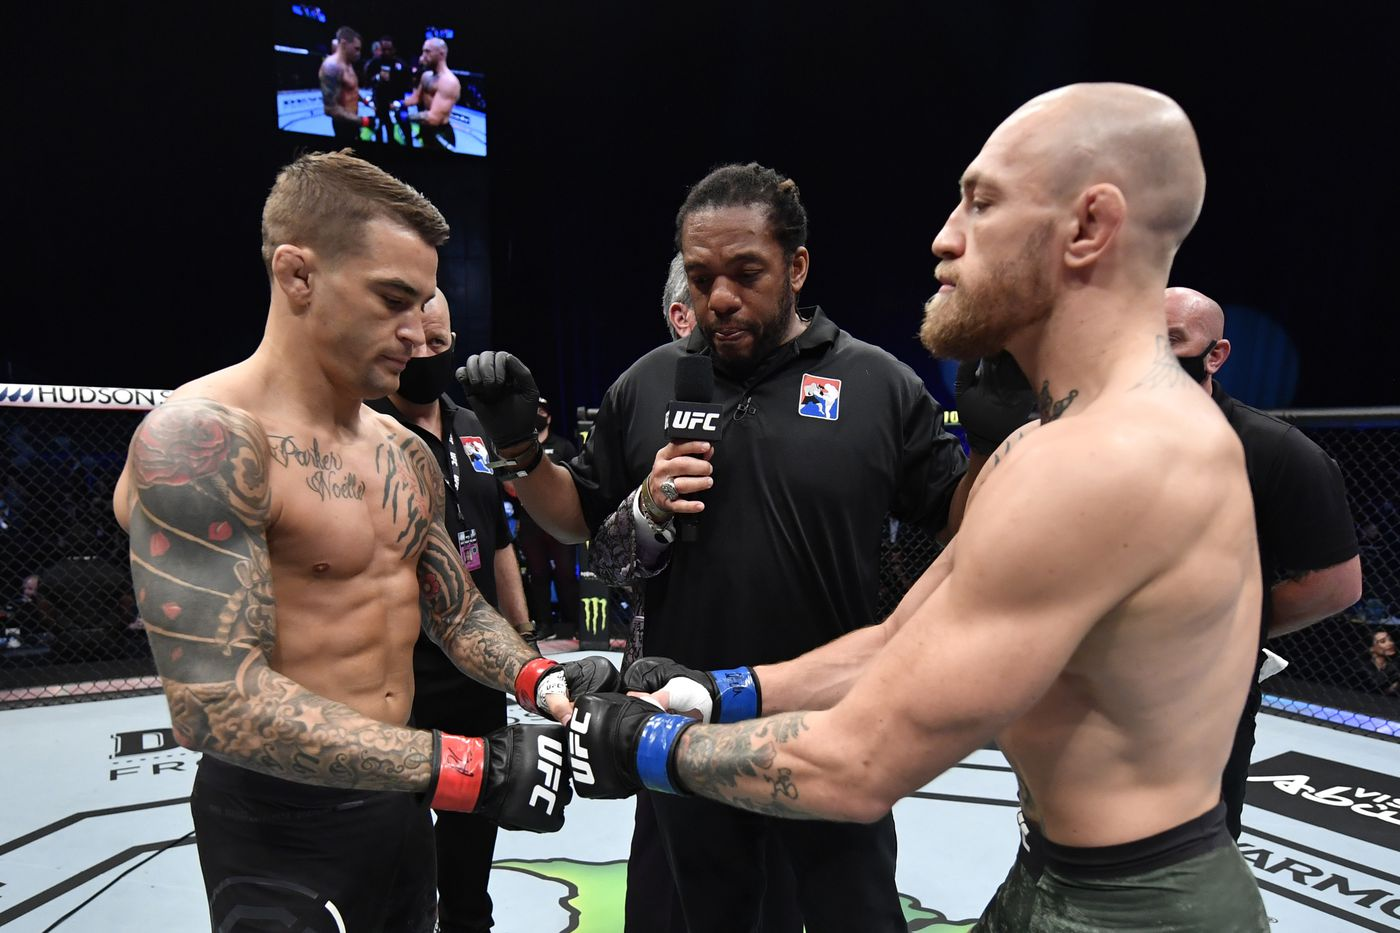 Dustin Poirier signs contract for trilogy with Conor McGregor at UFC 264 - MMA Fighting